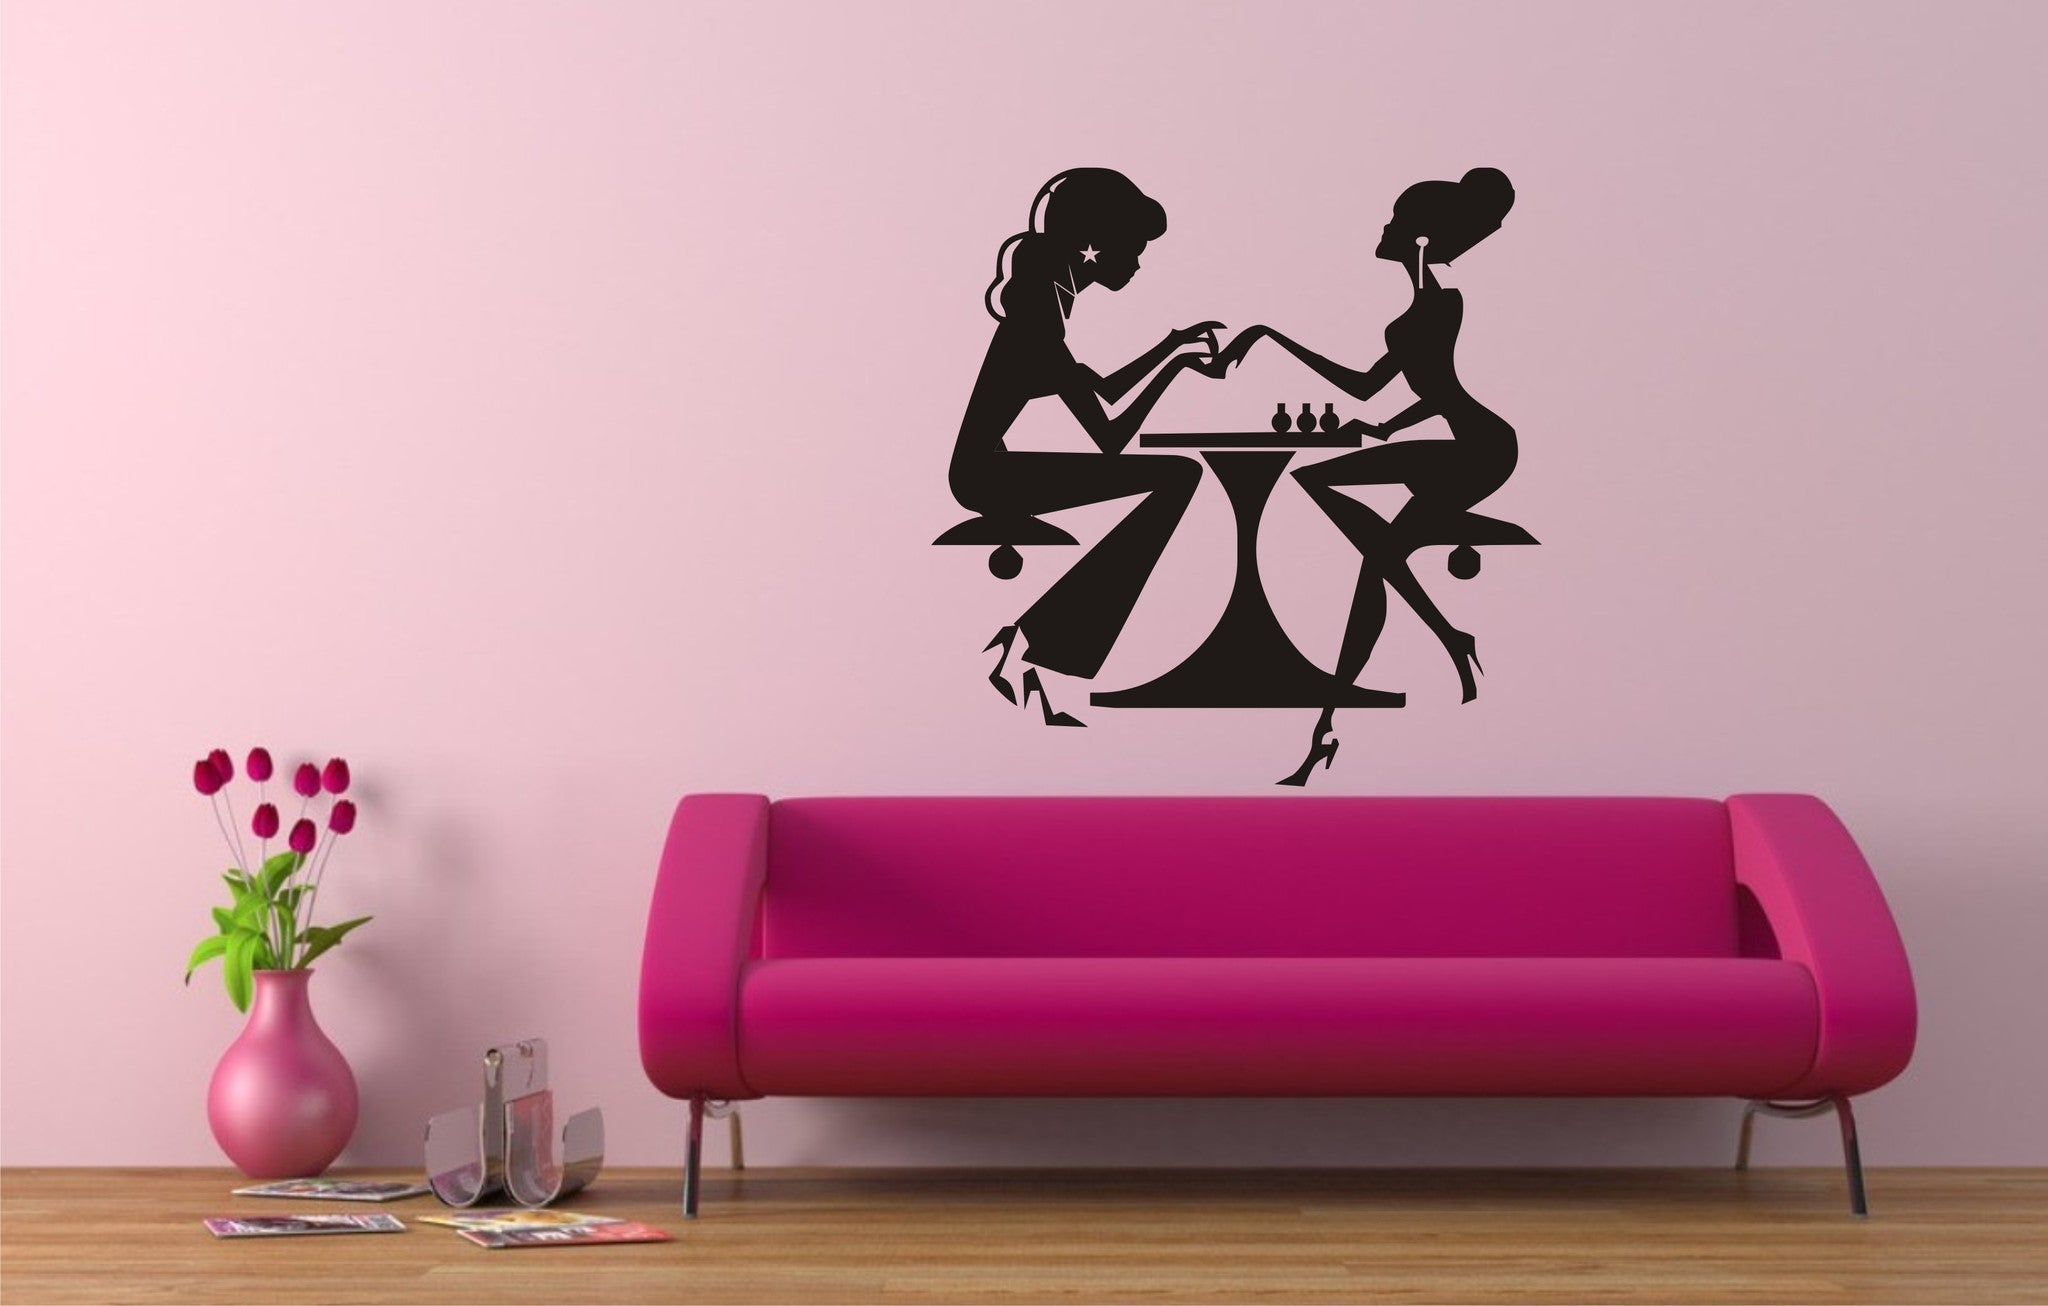 Nails pedicure salon wall art sticker stunning decals for Spa wall decor